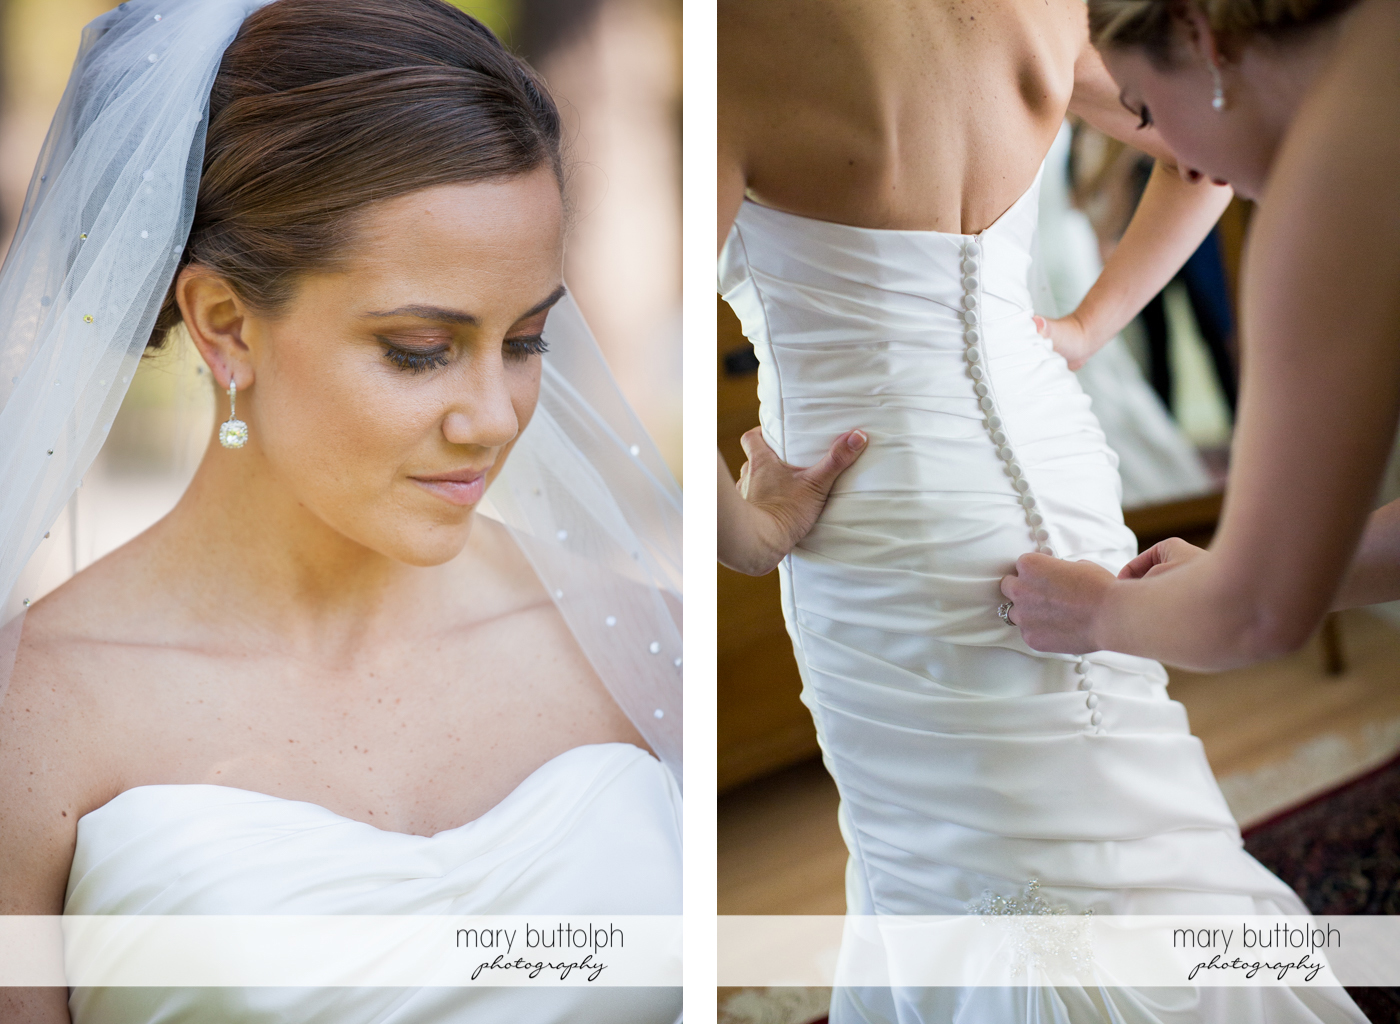 Bride slips on her wedding dress with a little help from a friend at Skaneateles Country Club Wedding